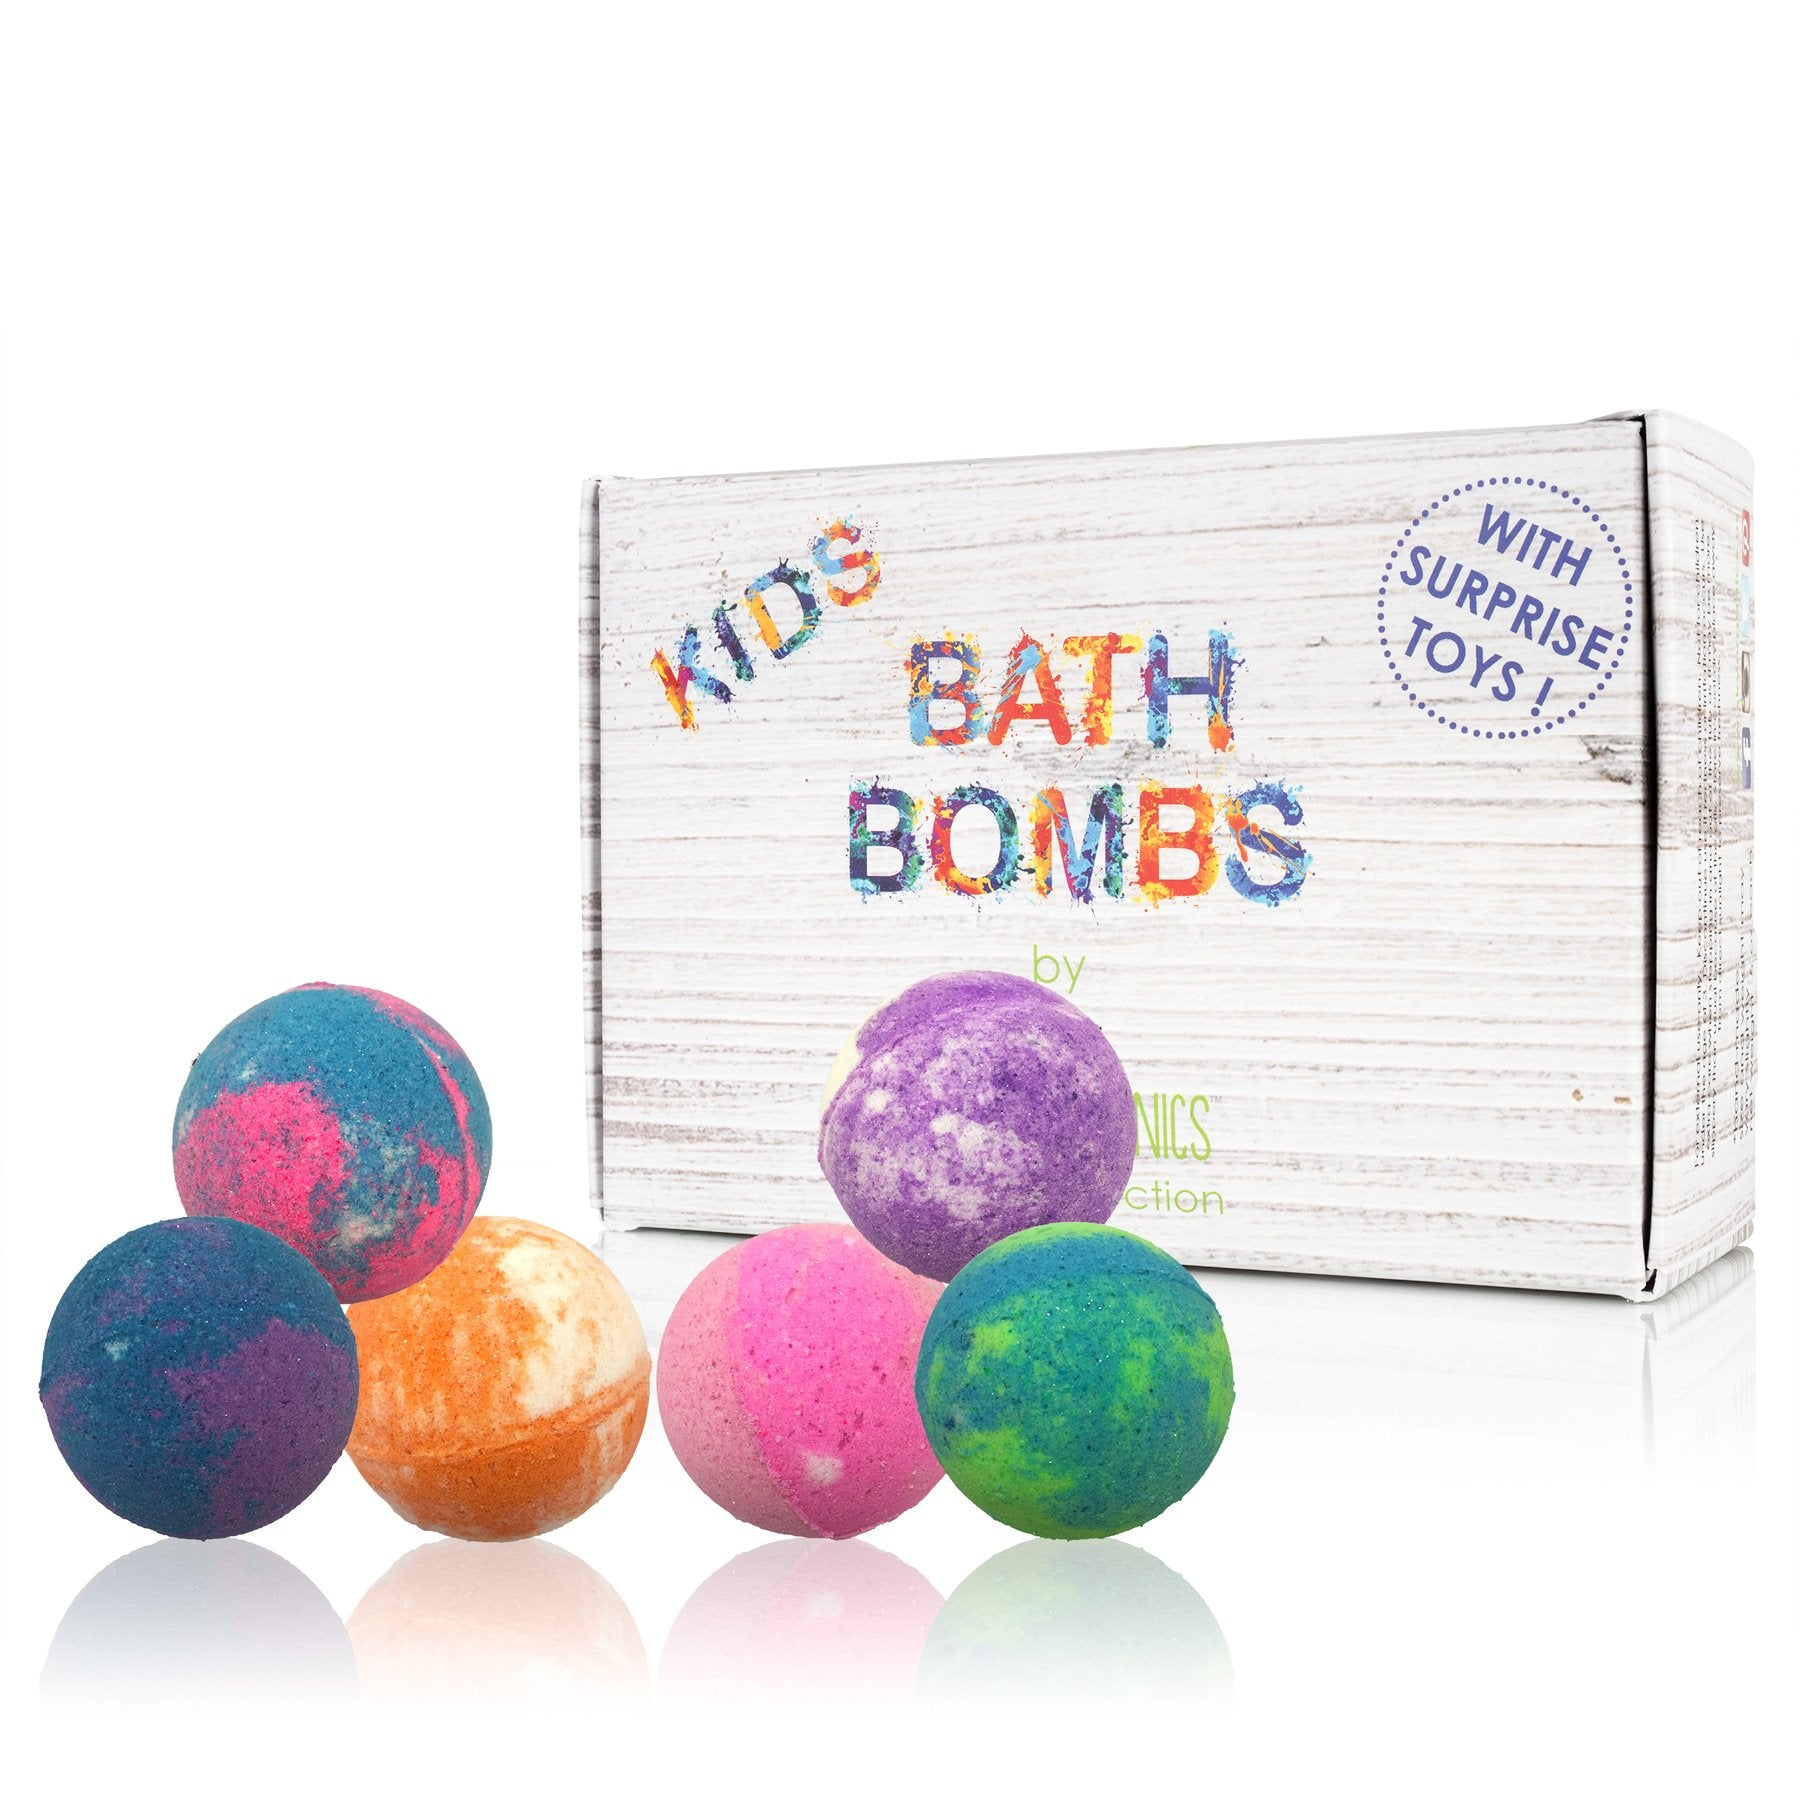 SKY ORGANICS - Sweet Like Candy Bath Bombs Assorted Set with Toy - Kids